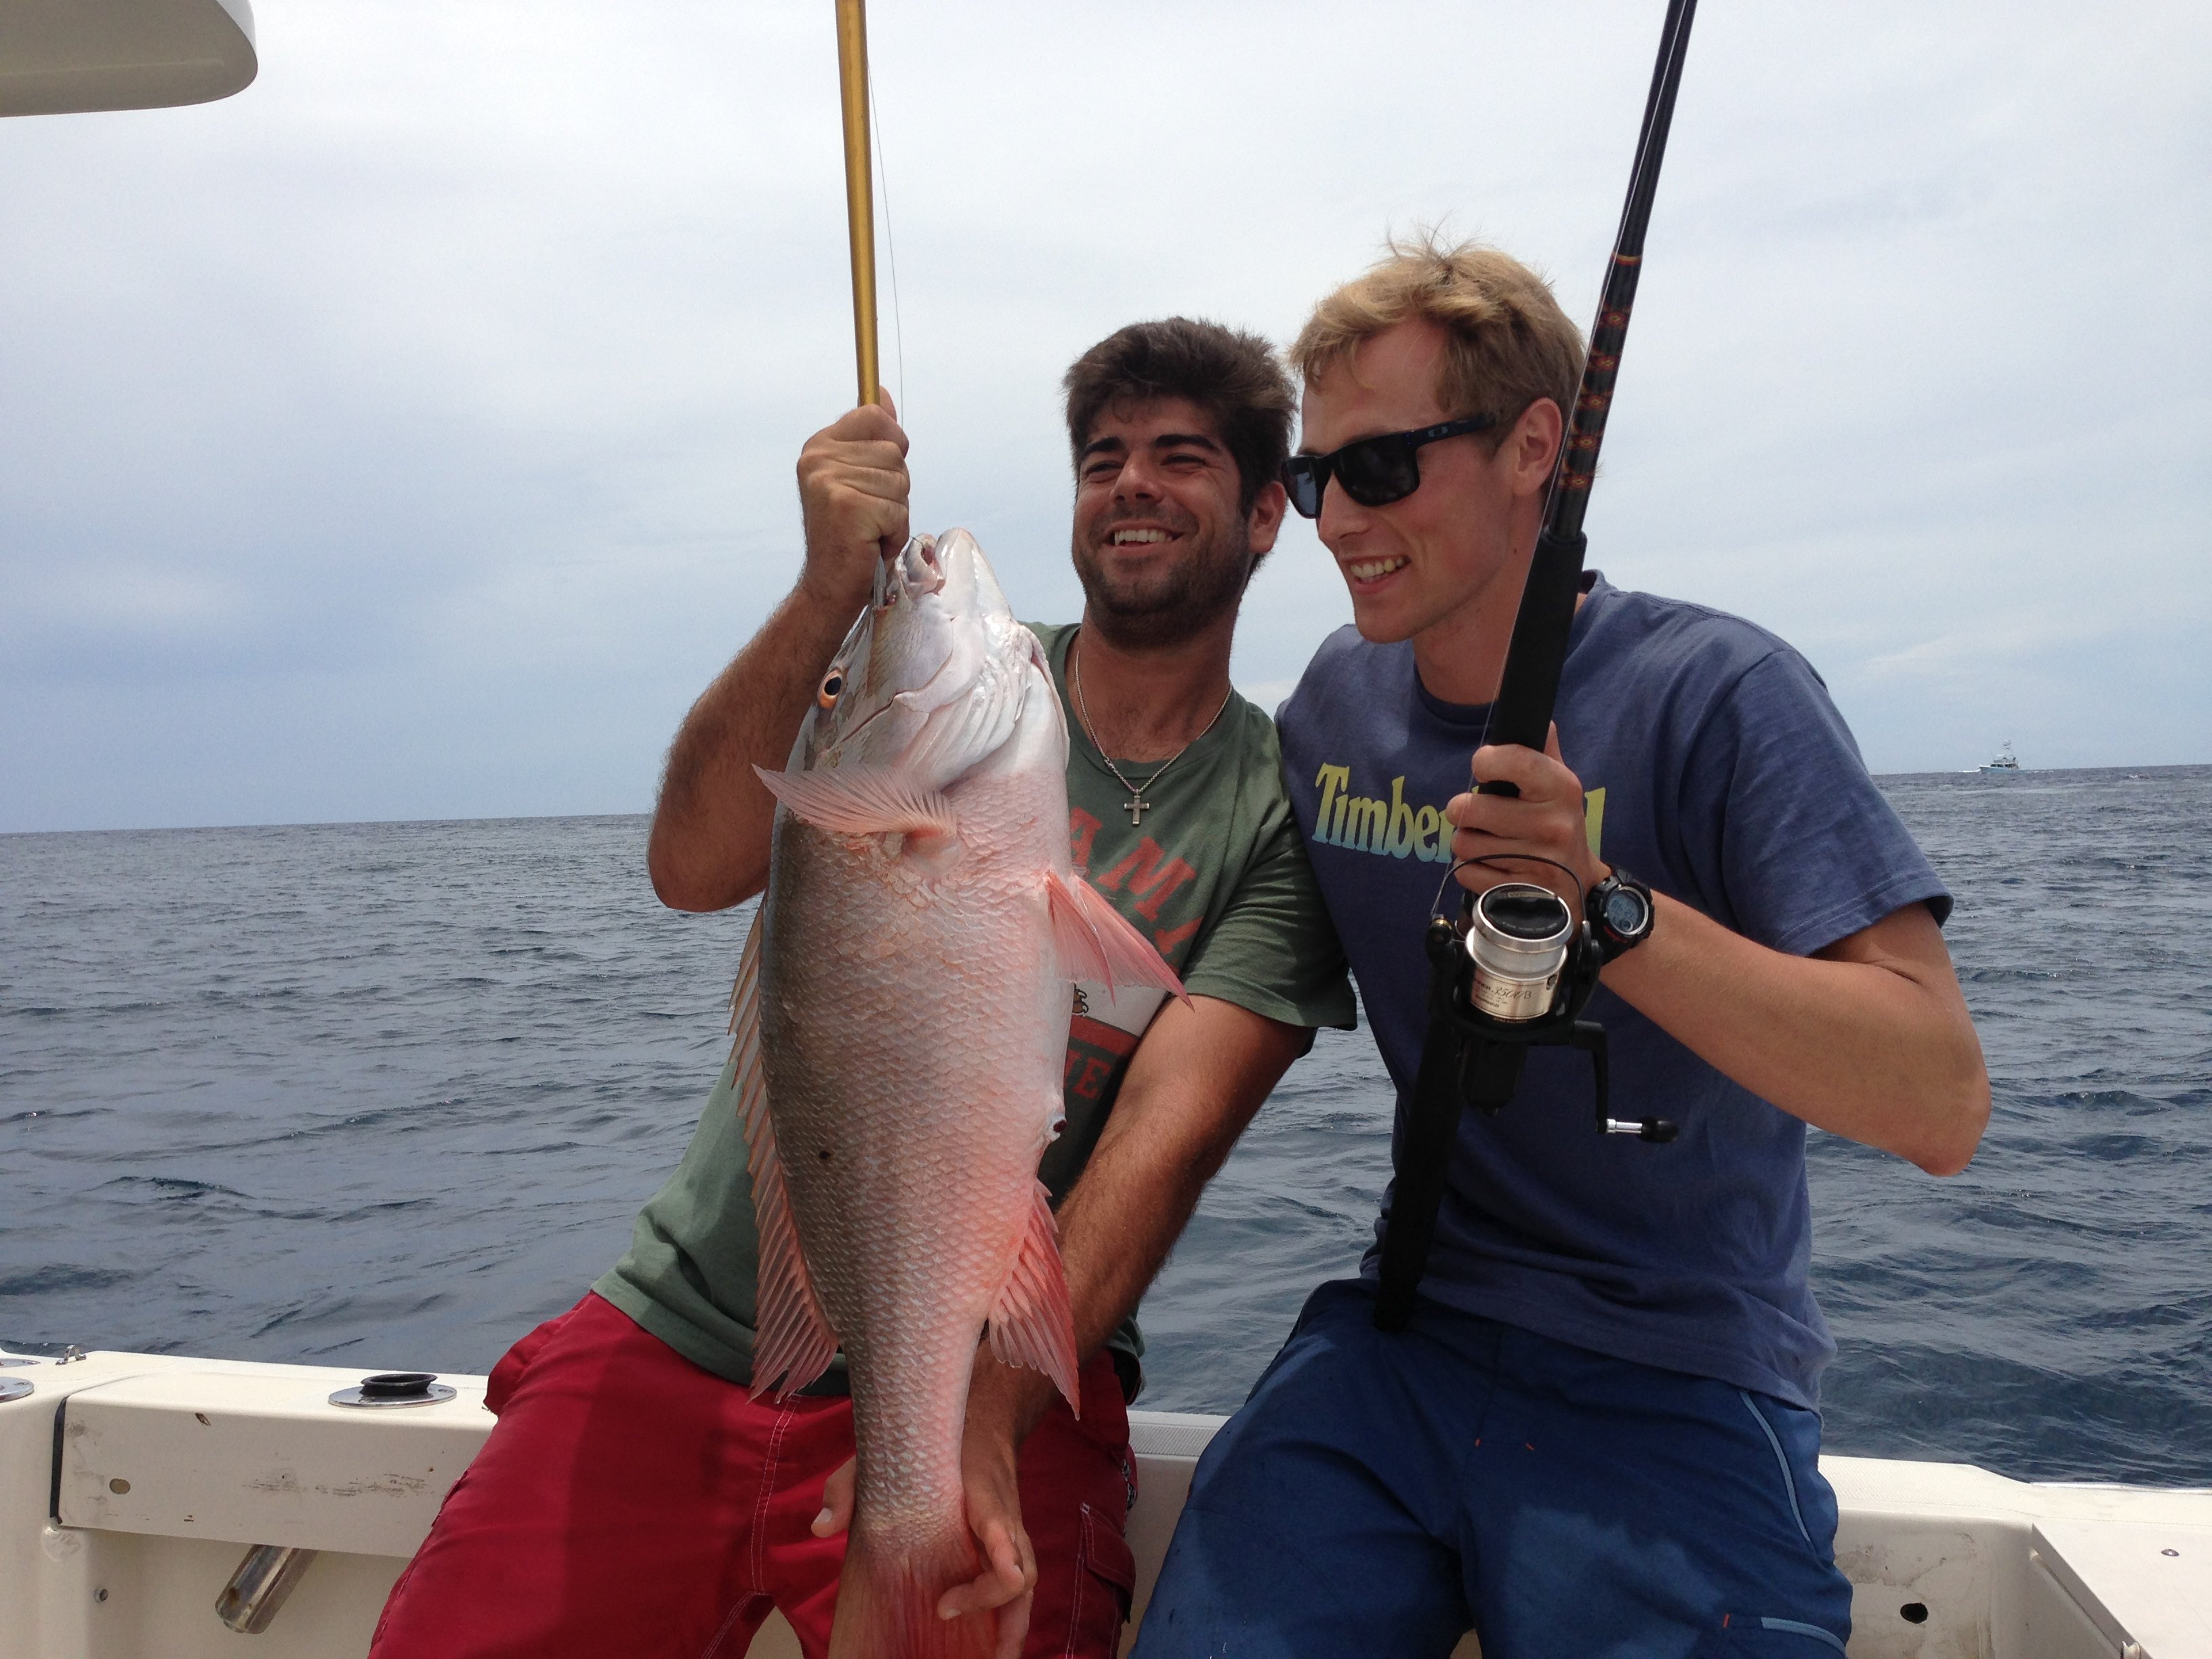 30 inch mutton blue pursuit gets record size on board for Miami beach fishing charters